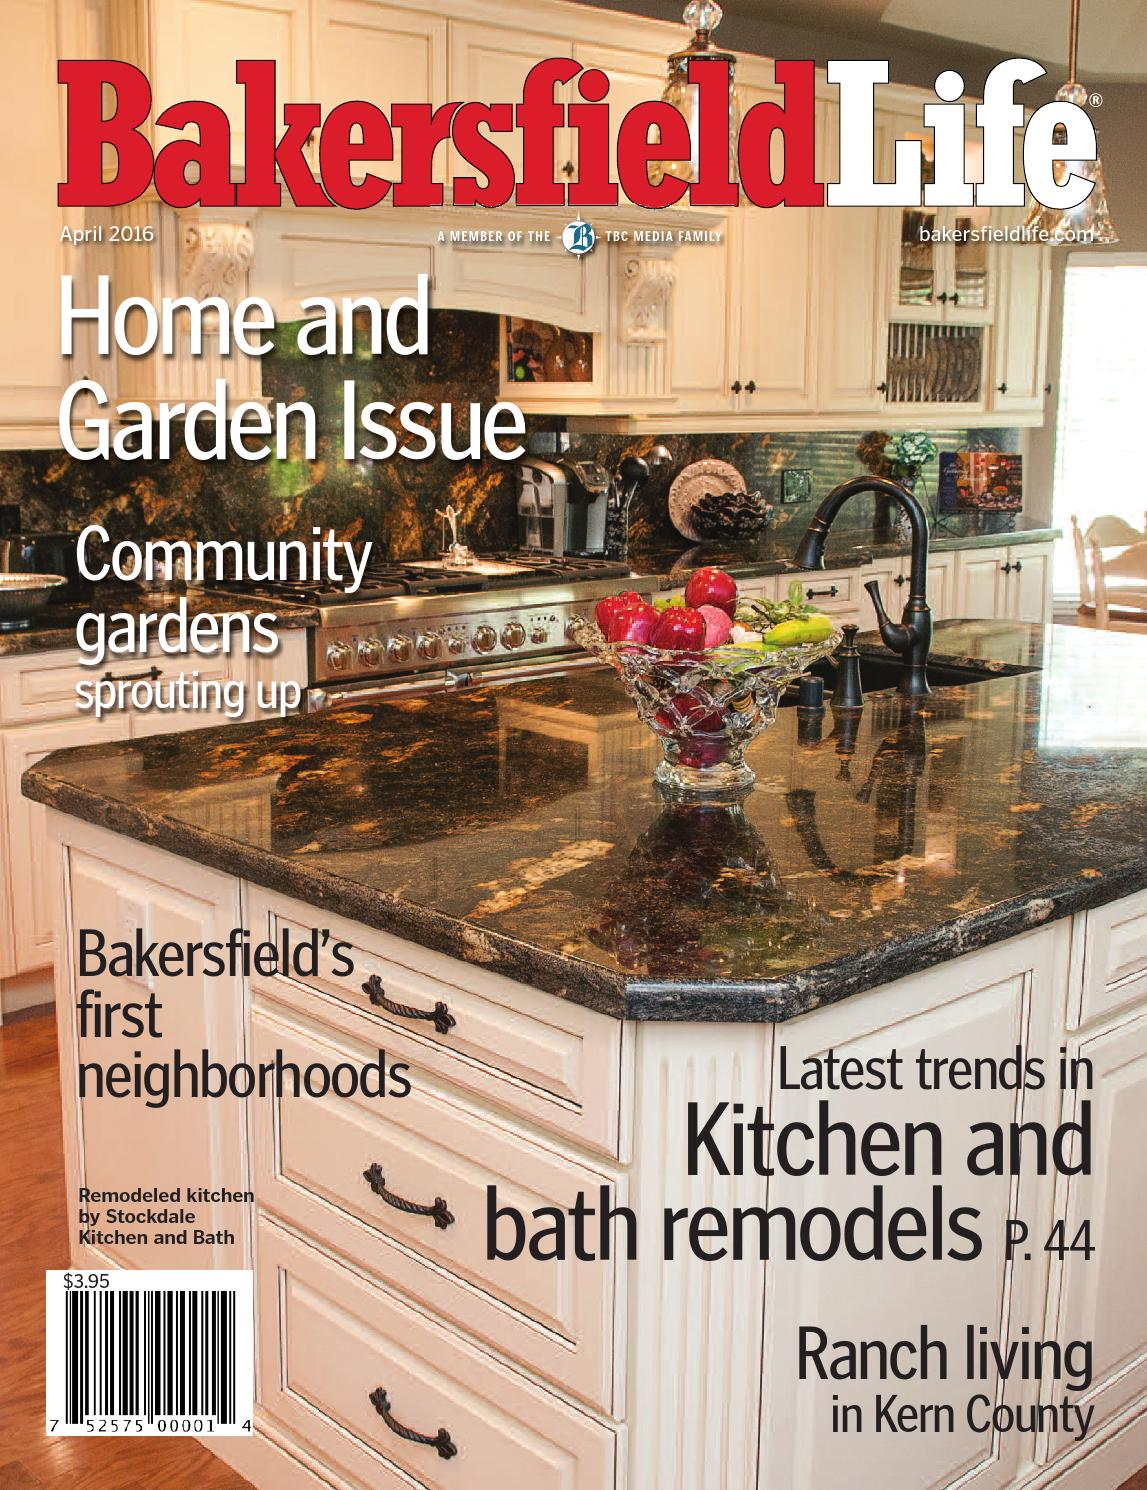 marvelous bakersfield home magazine #5: Bakersfield Life Magazine April 2016 by TBC Media Specialty Publications -  issuu